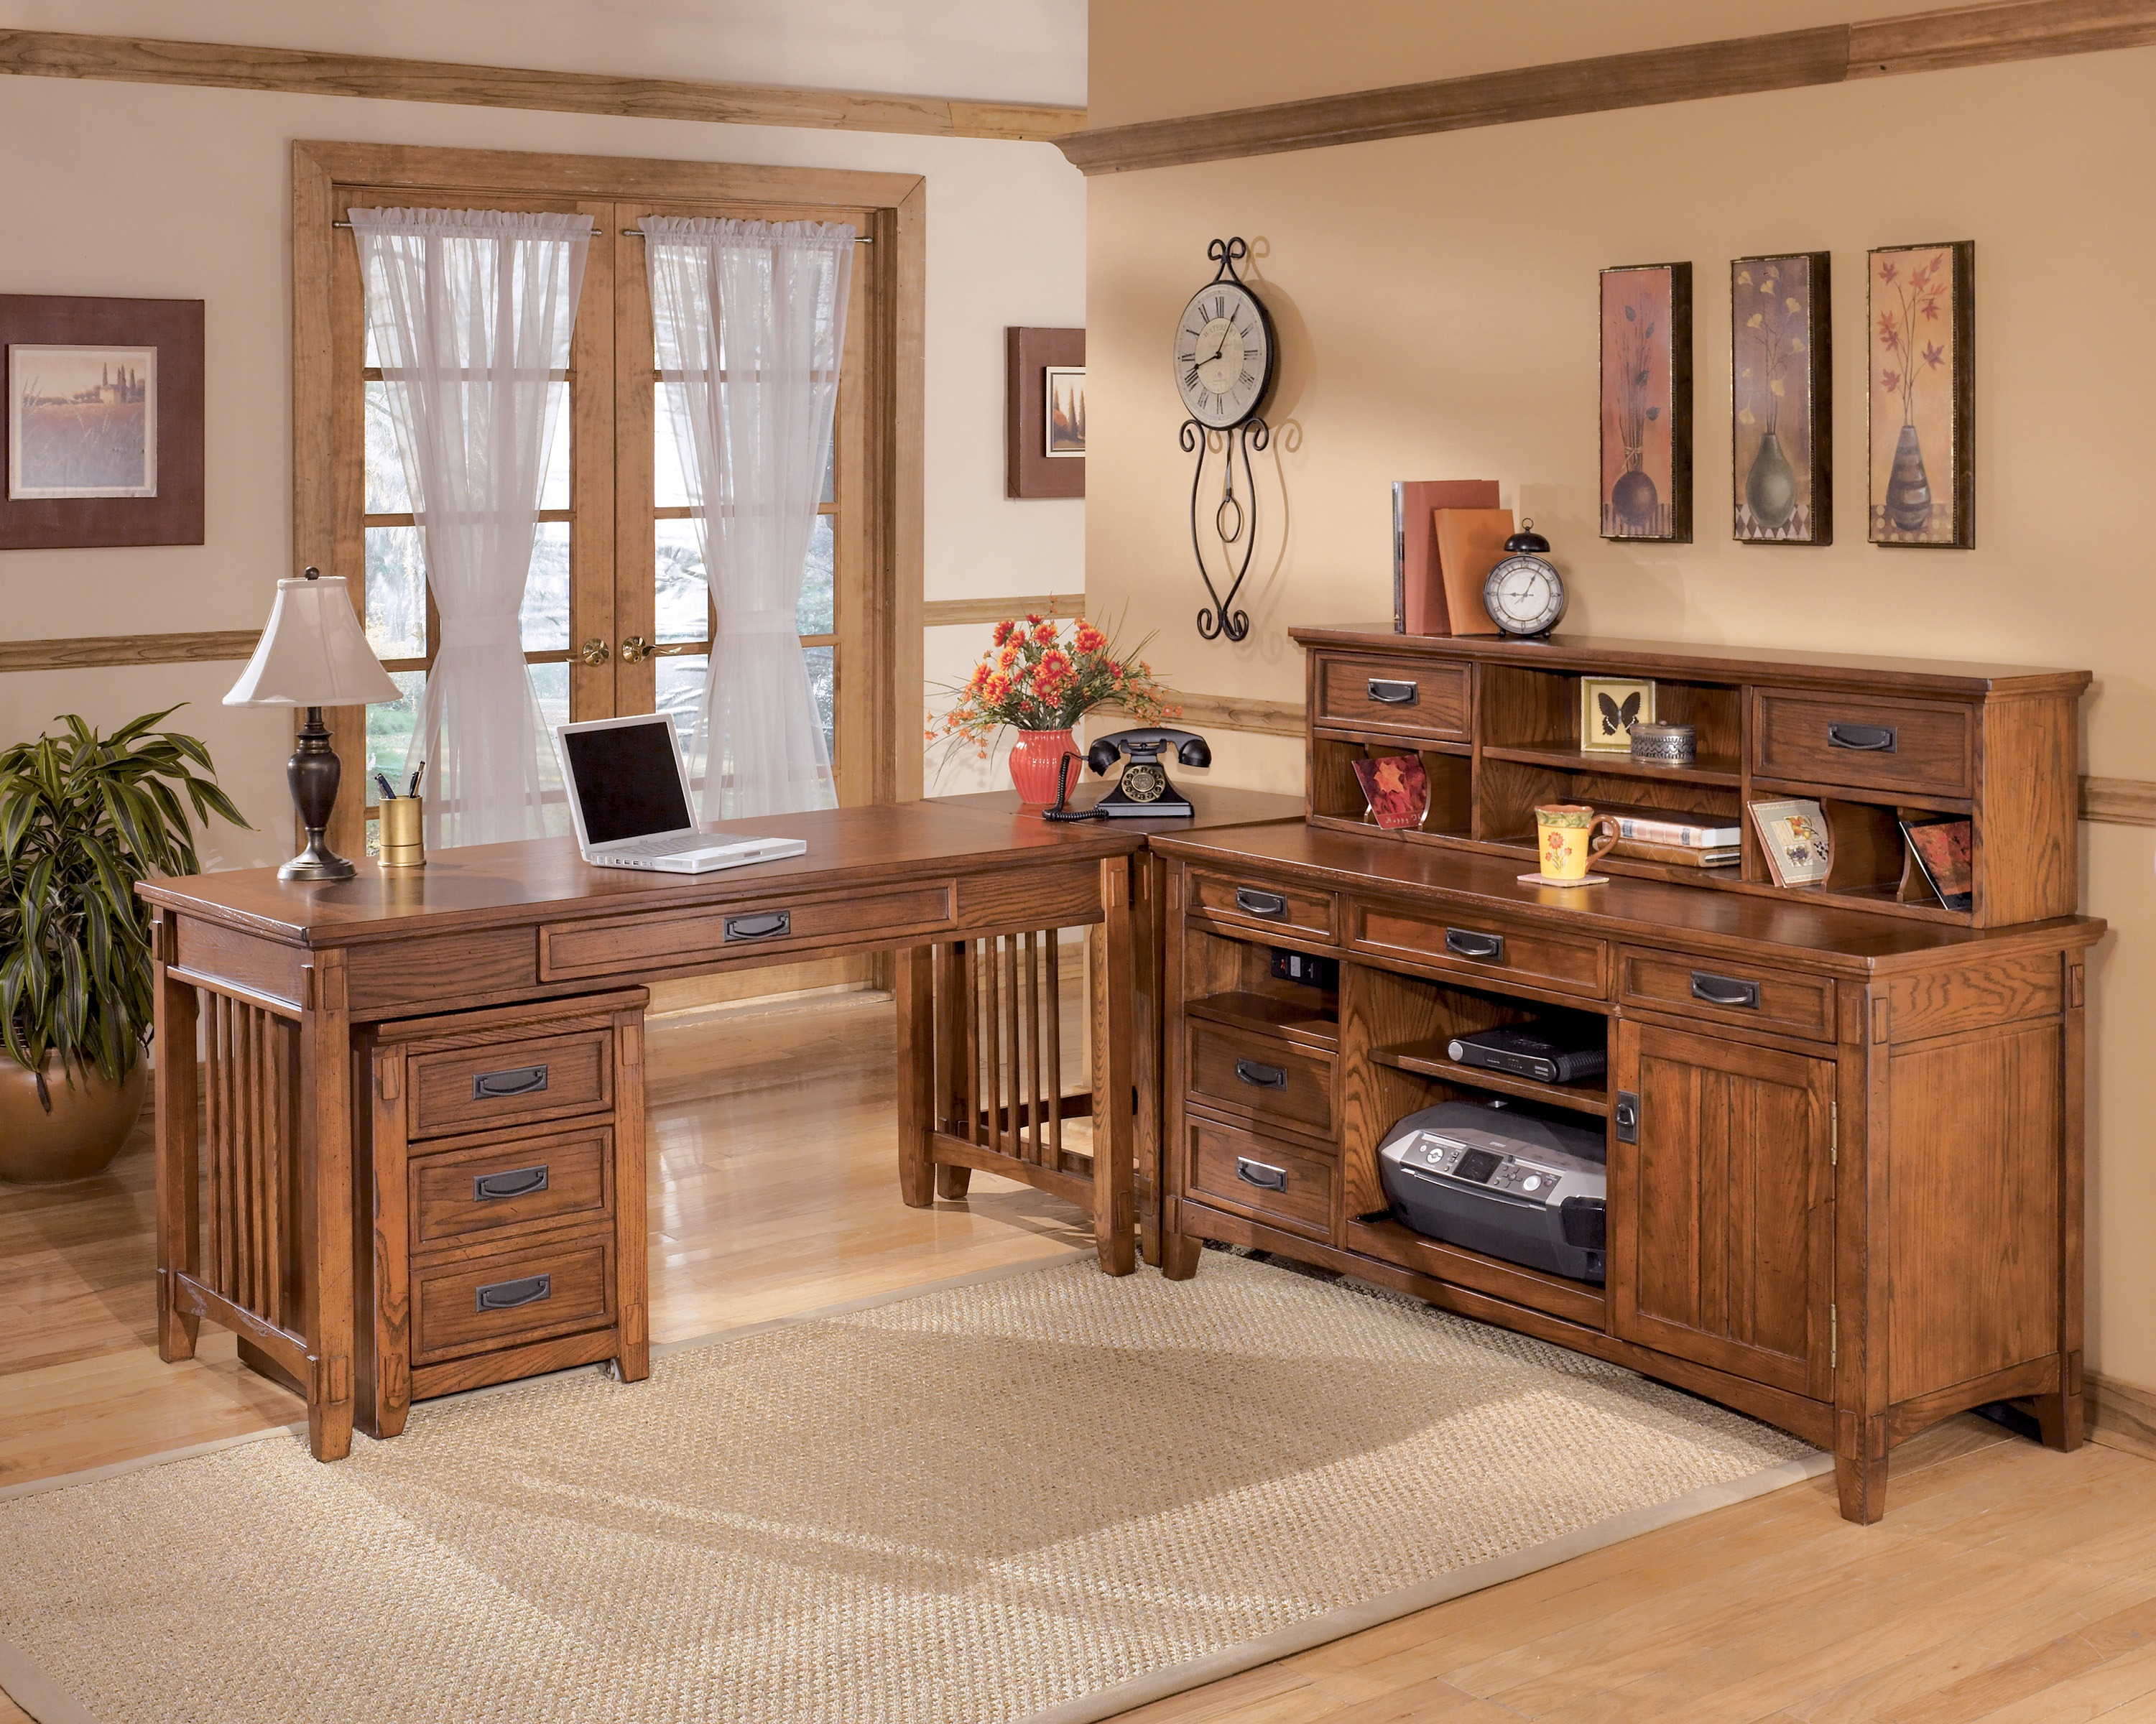 Country Style Office Furniture. Download Image: 3001×2400 (1.66mb) Country